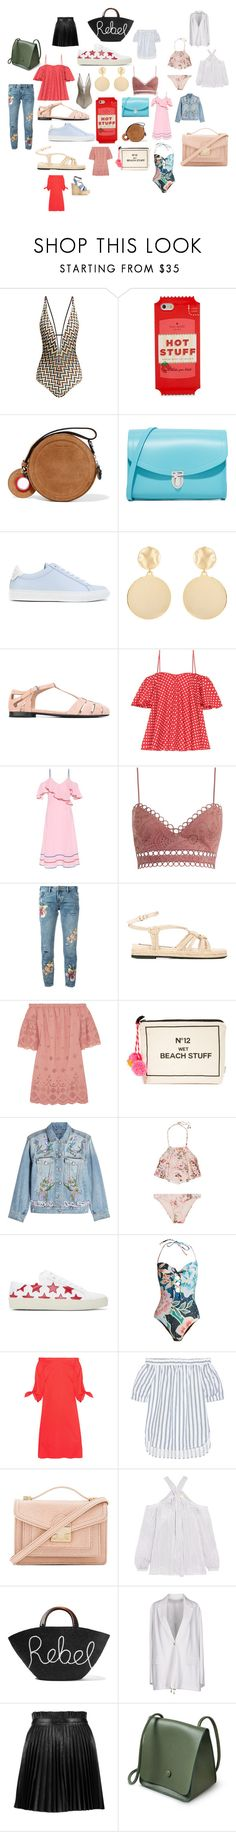 """Untitled #304"" by kaylee-woolsey ❤ liked on Polyvore featuring Missoni Mare, Kate Spade, Carven, The Cambridge Satchel Company, Givenchy, Mounser, Church's, Anna October, Zimmermann and OneTeaspoon"